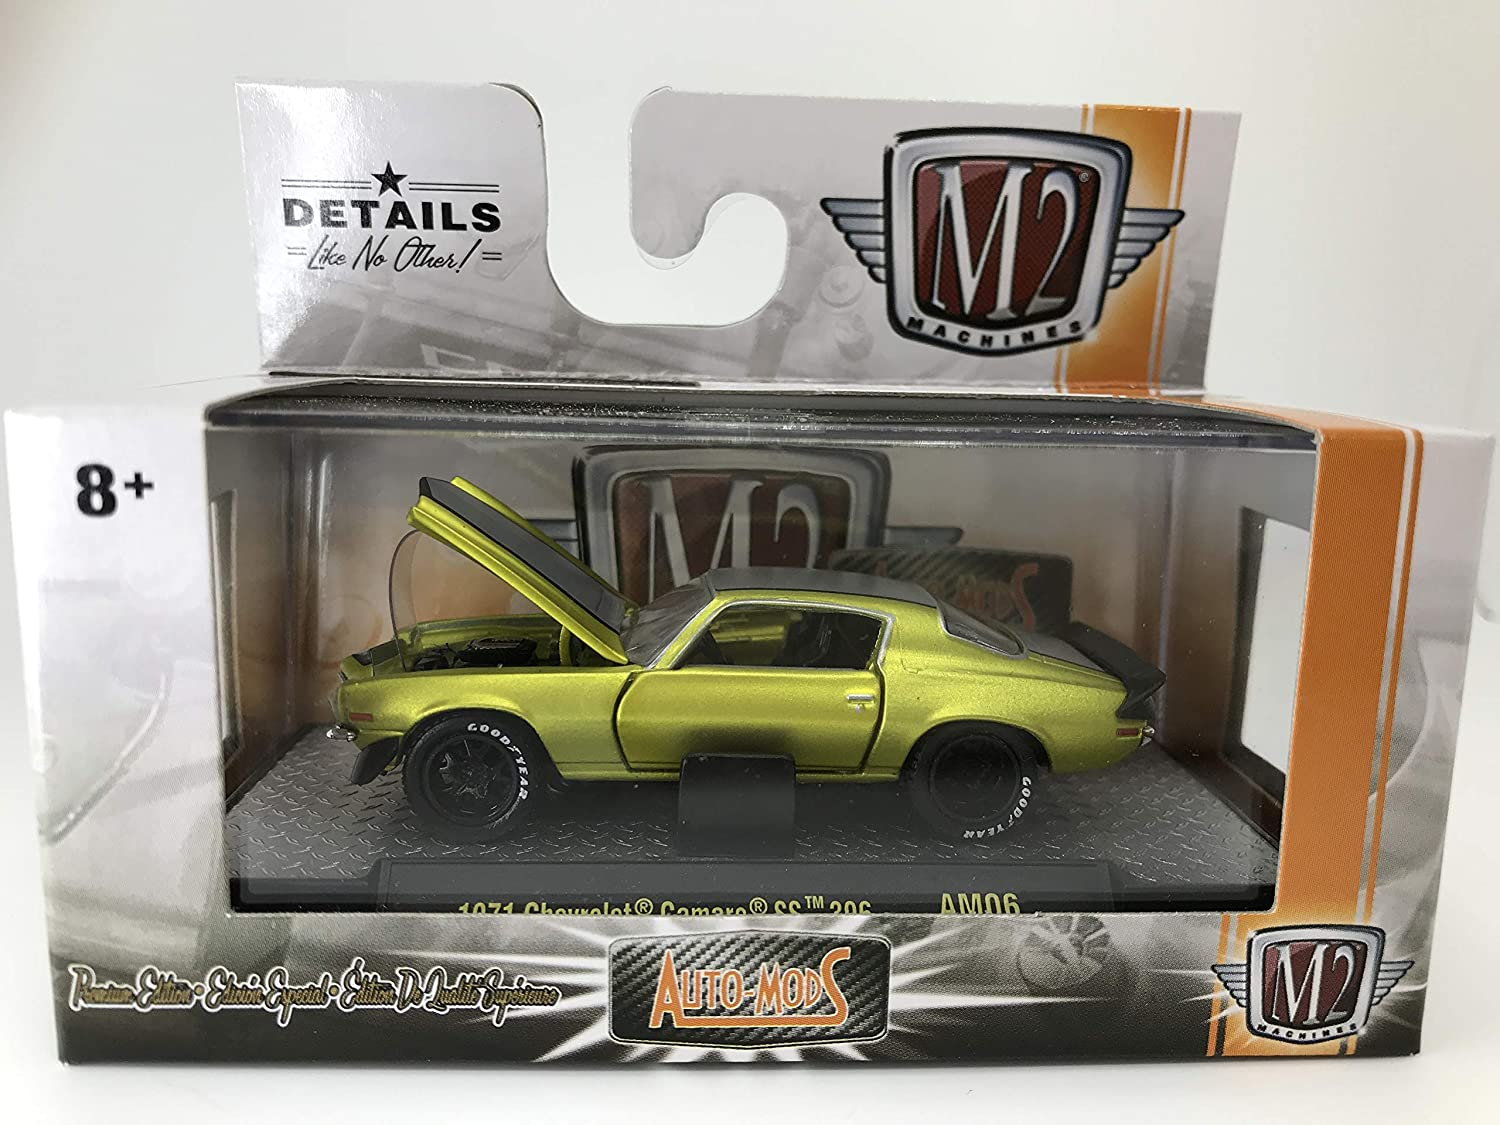 M2 Machines by M2 Collectible Auto-Mods 1971 Chevy Camaro SS 396 1:64 Scale AM06 17-49 Matte Neon Green/Black Details Like NO Other! 1 of 6000